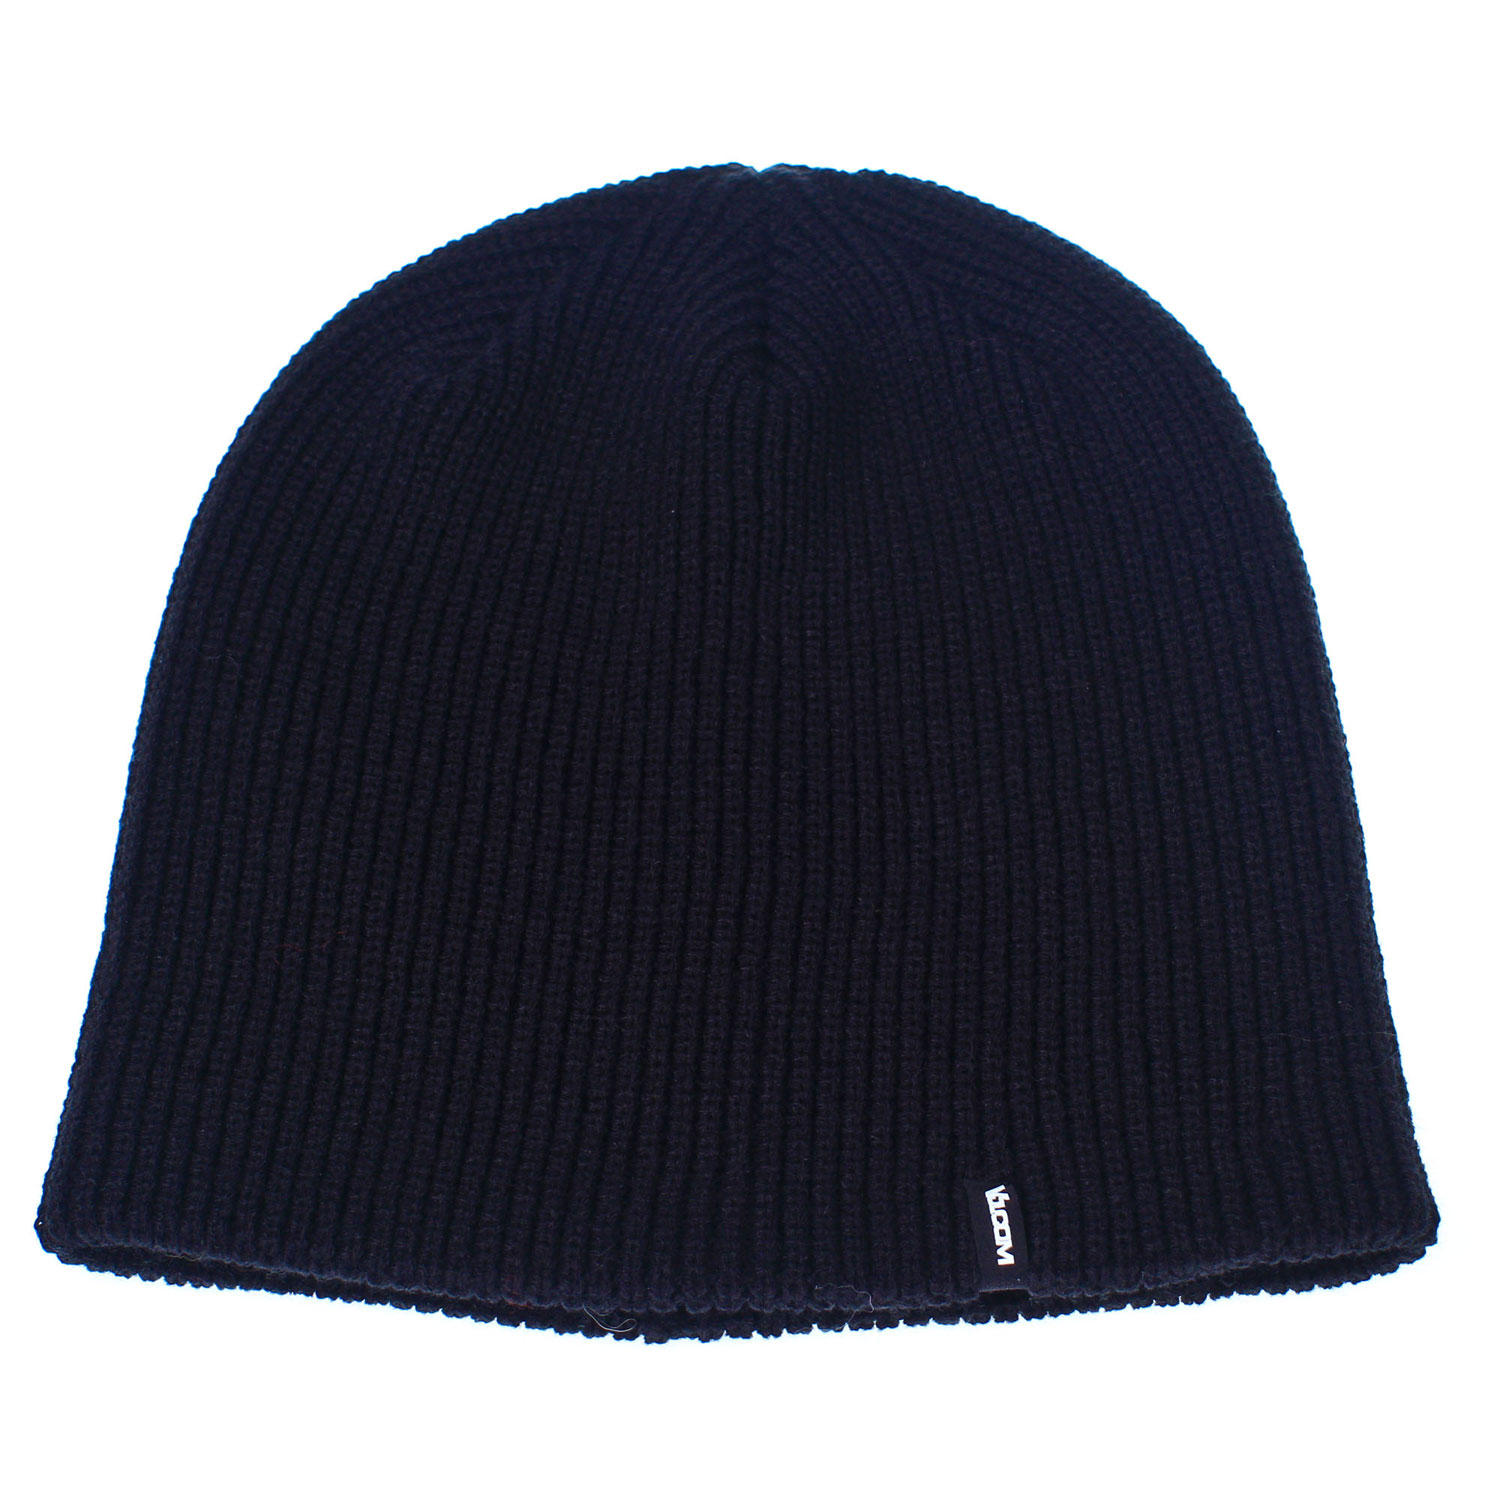 Surf Key Features of the Volcom Stock Mod Beanie:  One Size Fits Most  Machine Knit Acrylic   Stone Embroidery   Woven Clamp Label   MOD Fit - $18.95